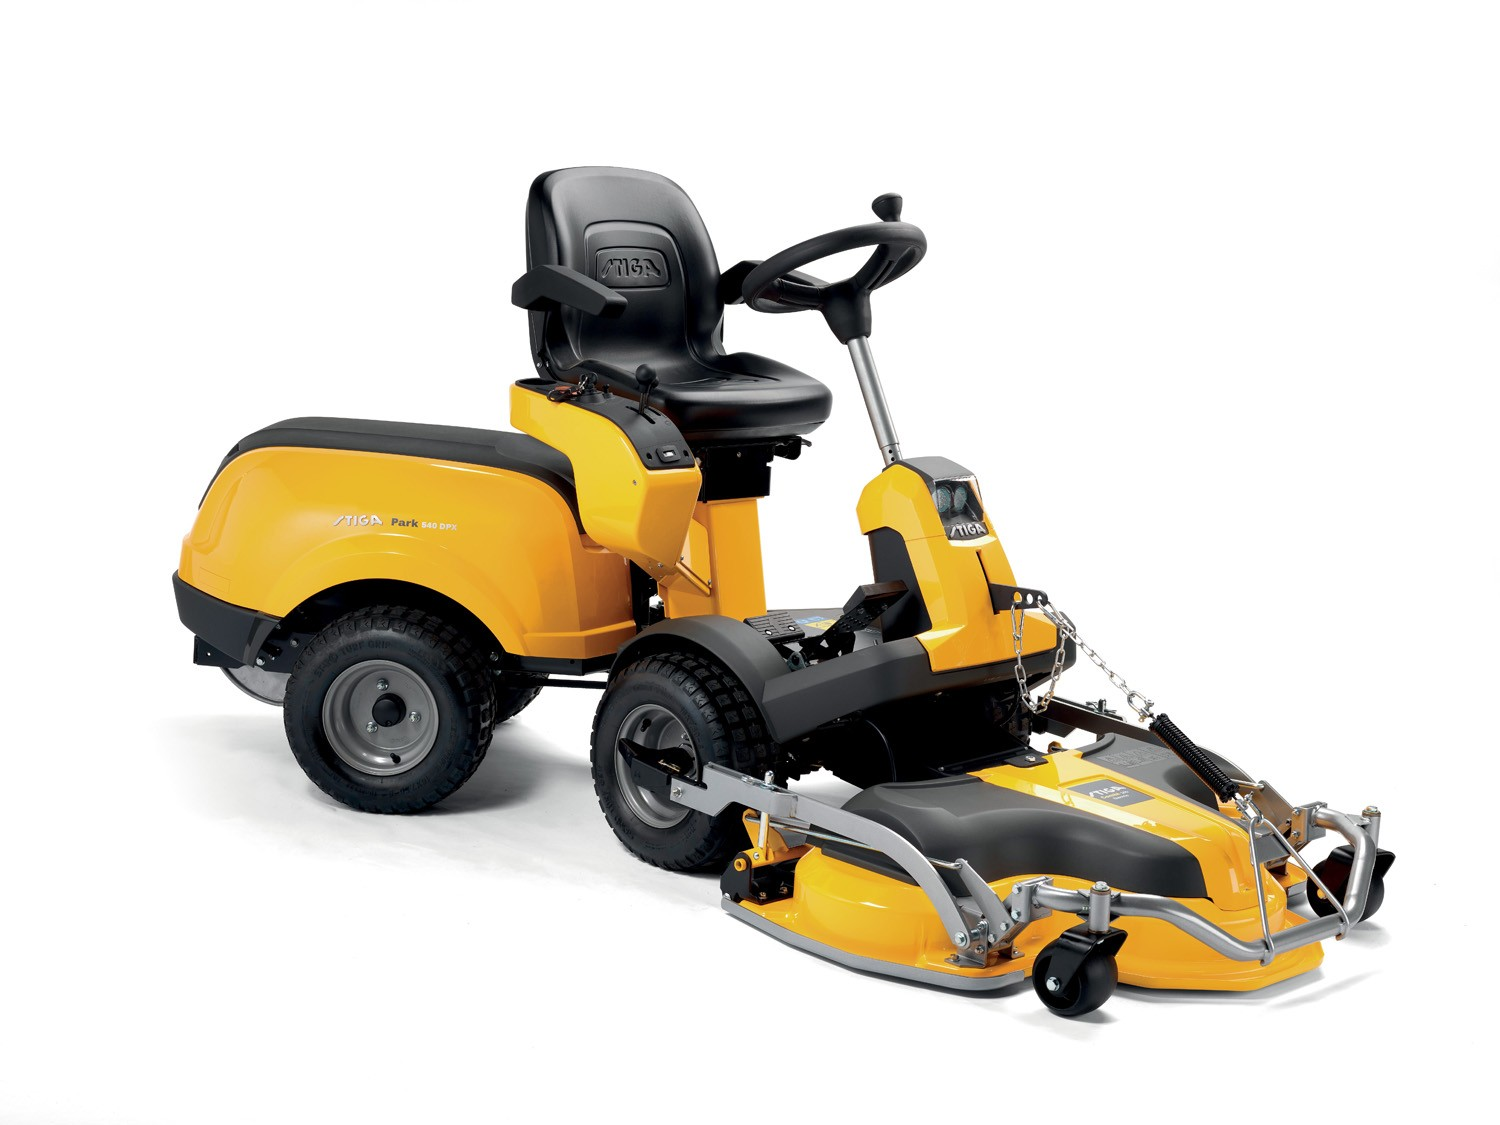 Stiga Park 540 DPX 4WD Diesel lawnmower